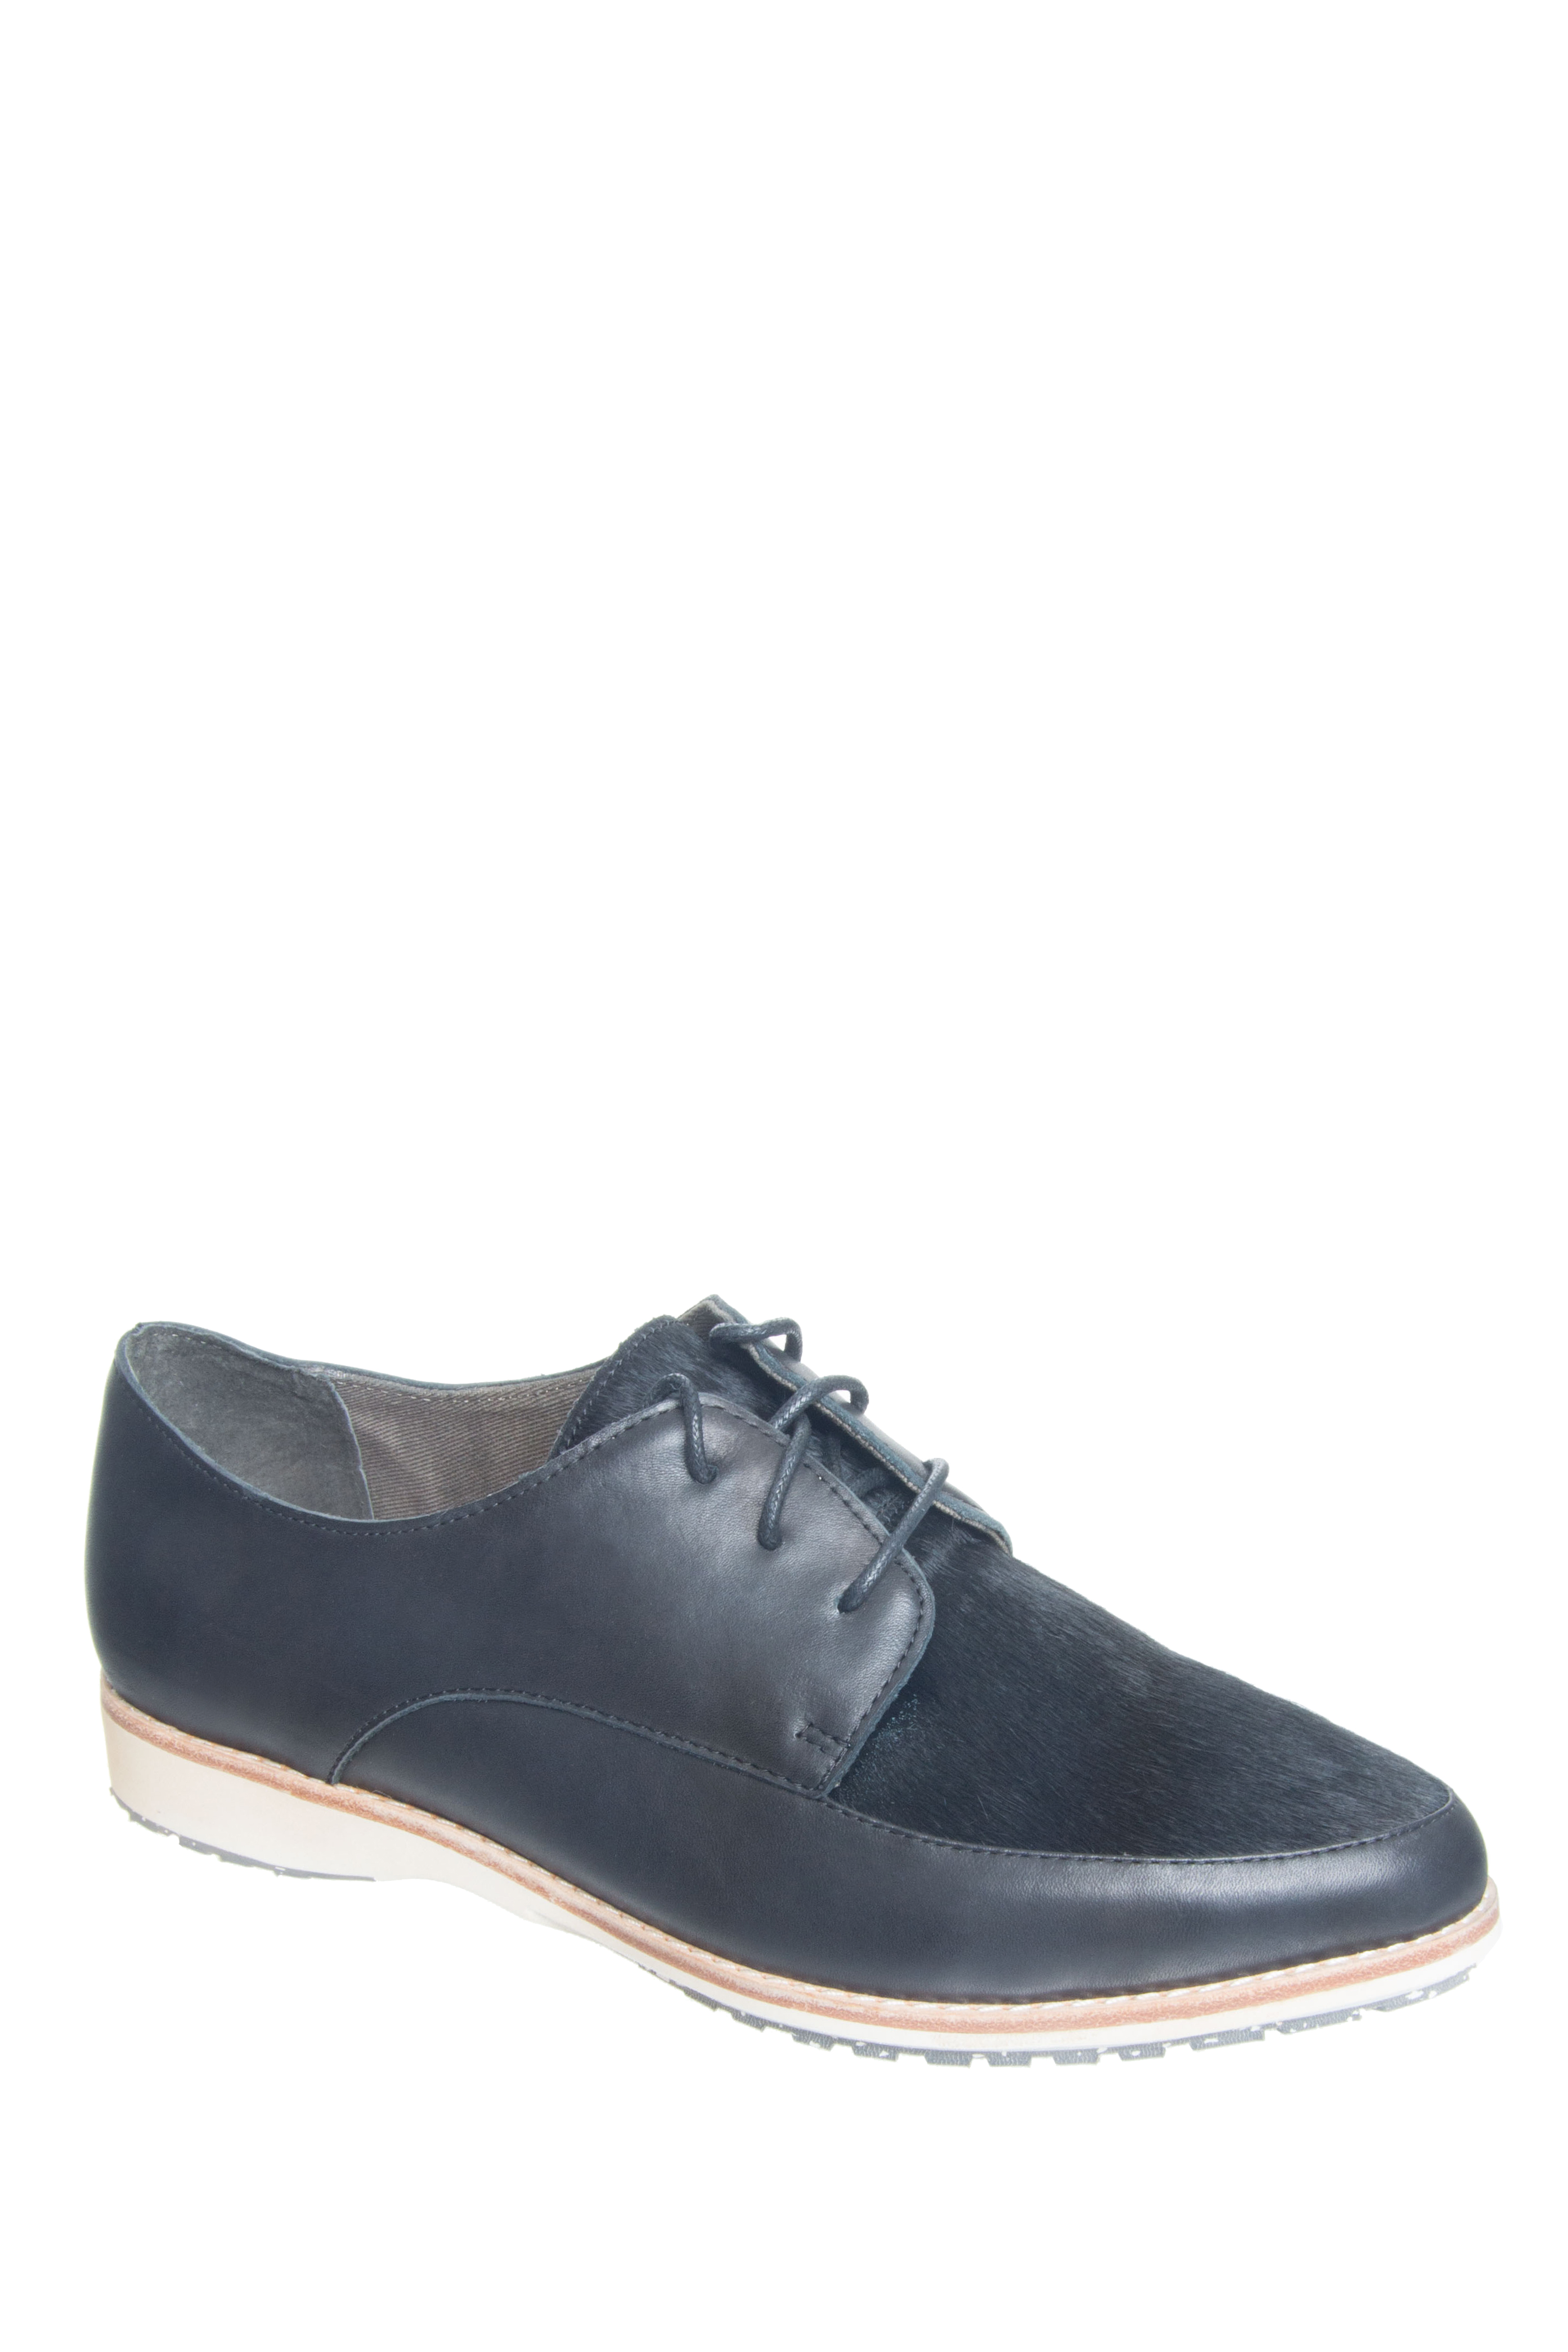 Rollie Nation Madison Derby Oxford - Black / Pony